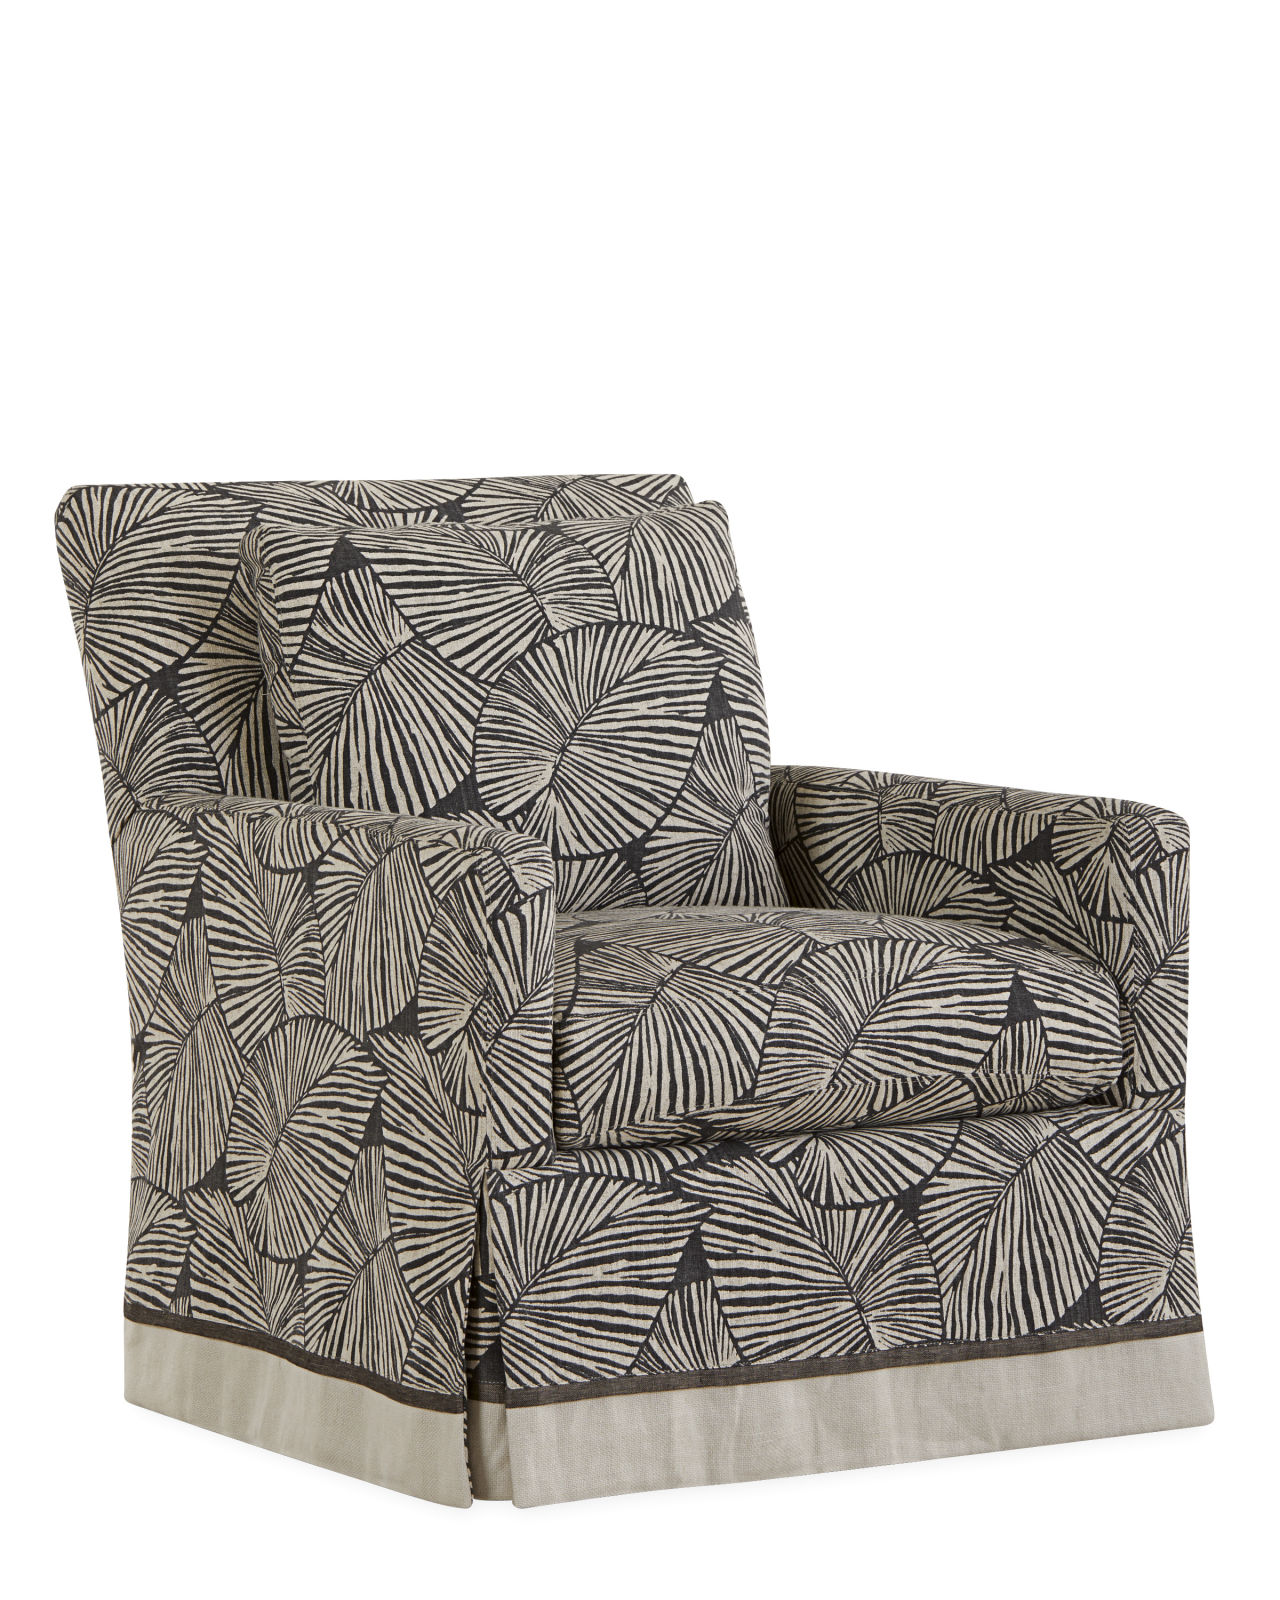 Jamieson Swivel Chair – $2,325.00